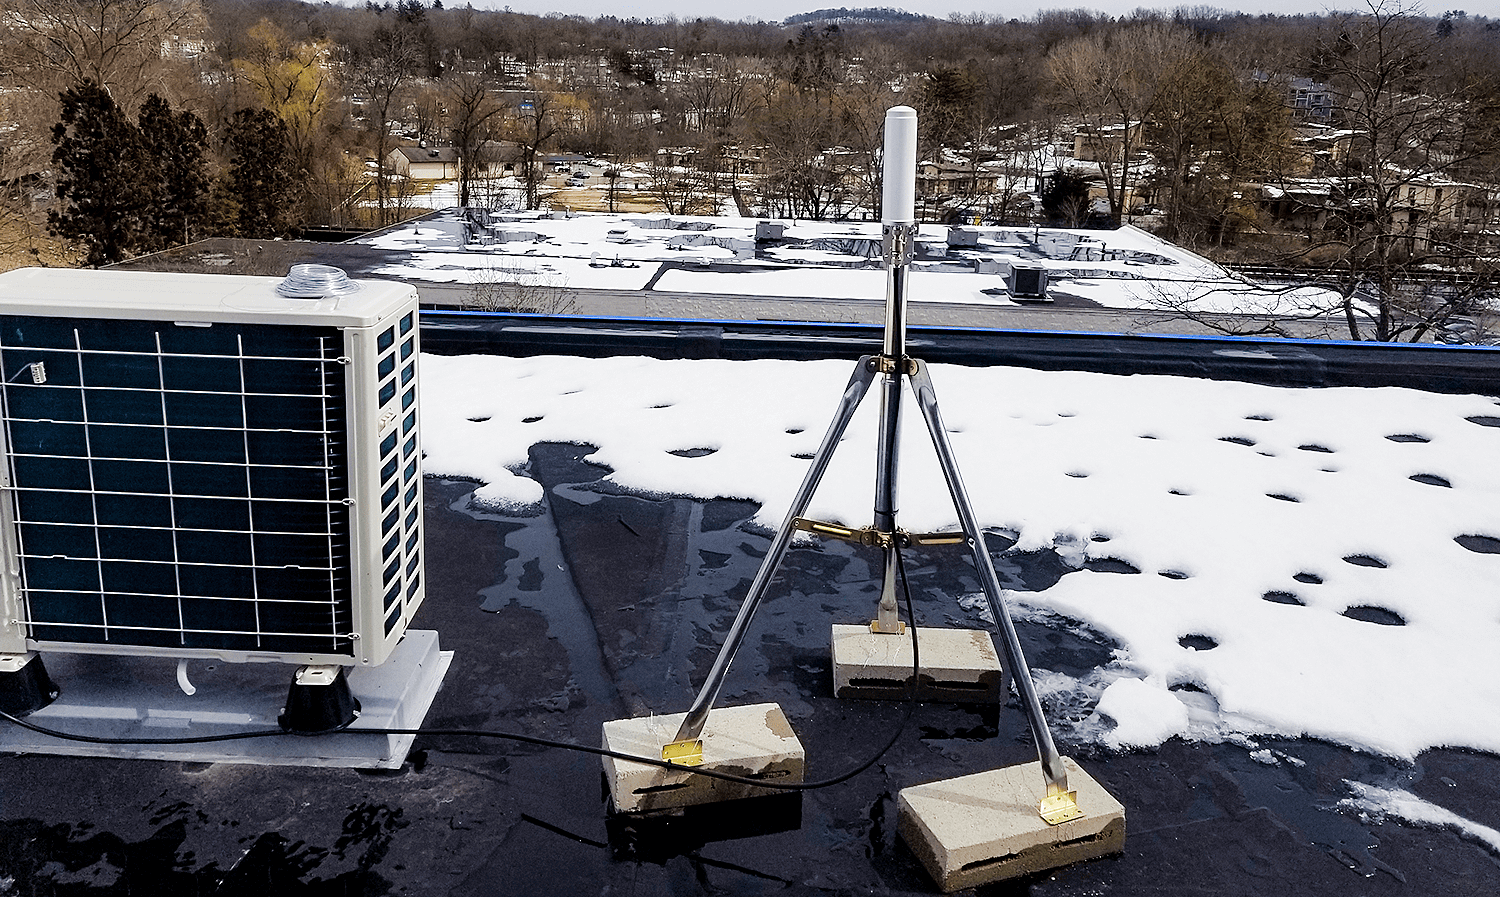 Top of 2 buildings showing exterior antenna installed on tripod